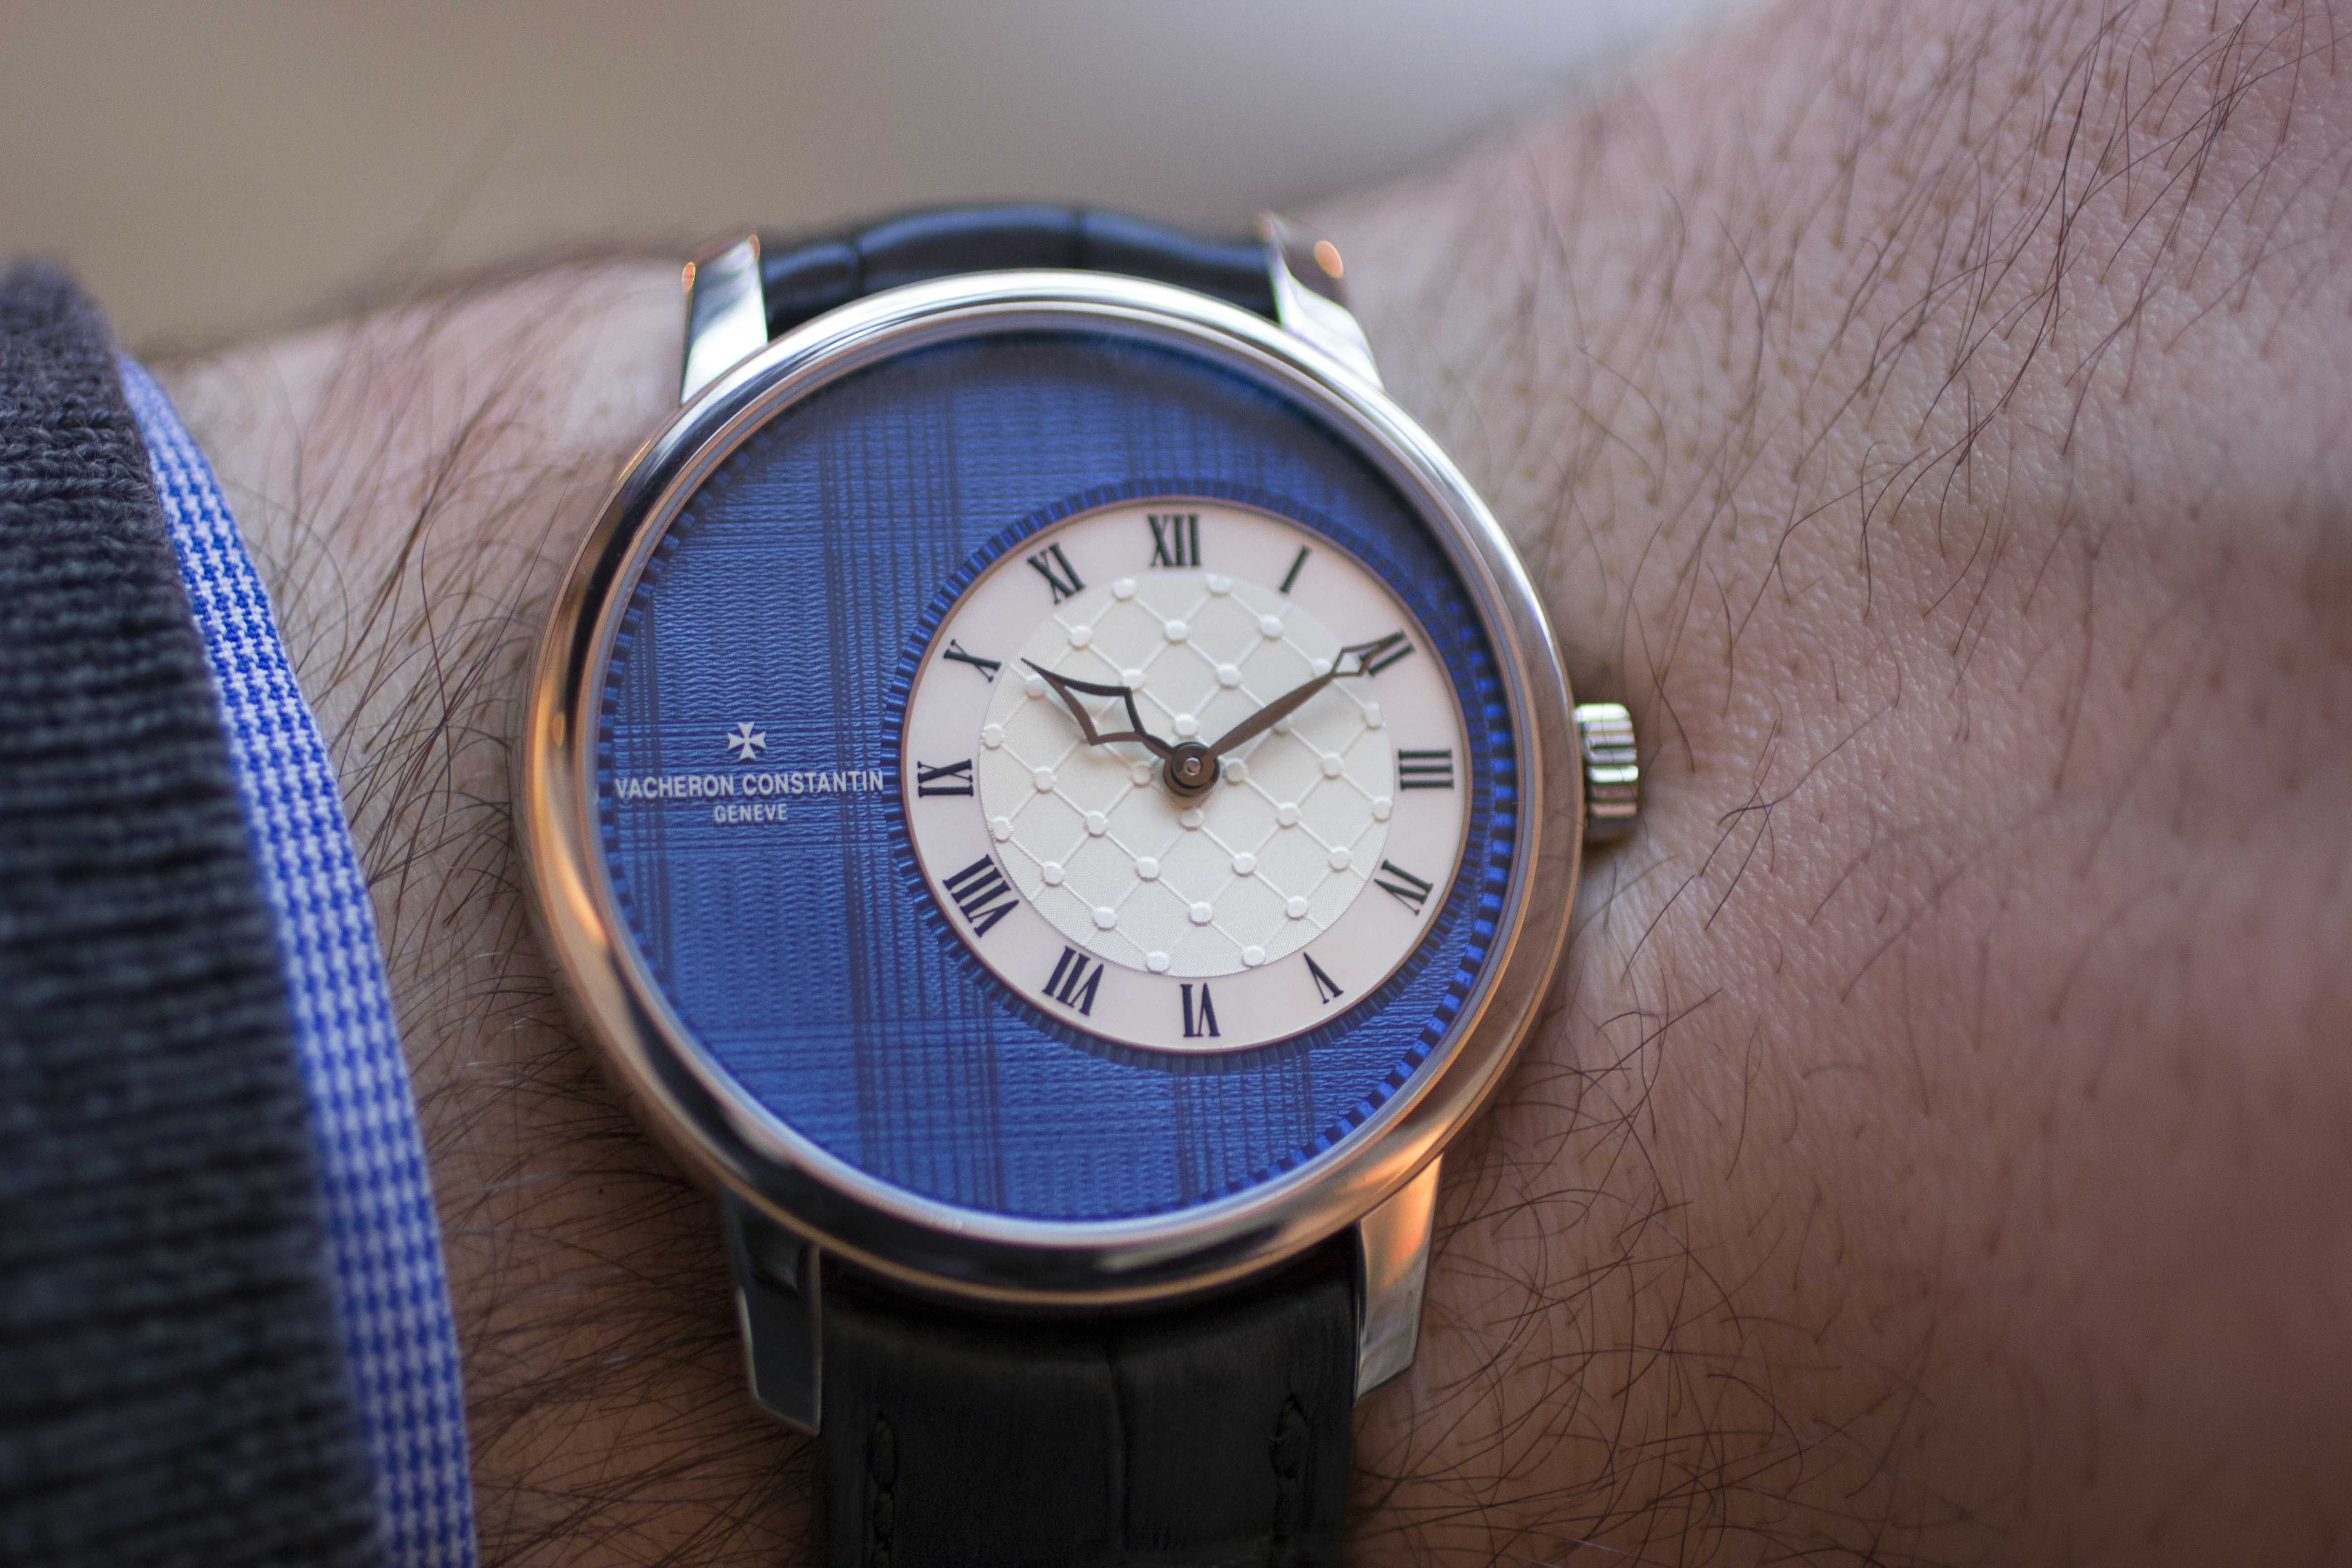 Introducing: The Vacheron Constantin Métiers d'Art Elégance Sartoriale, A Collection Dedicated To Matters Of Style (Live Pics, Pricing Information) Introducing: The Vacheron Constantin Métiers d'Art Elégance Sartoriale, A Collection Dedicated To Matters Of Style (Live Pics, Pricing Information) gallery tartan pattern 1